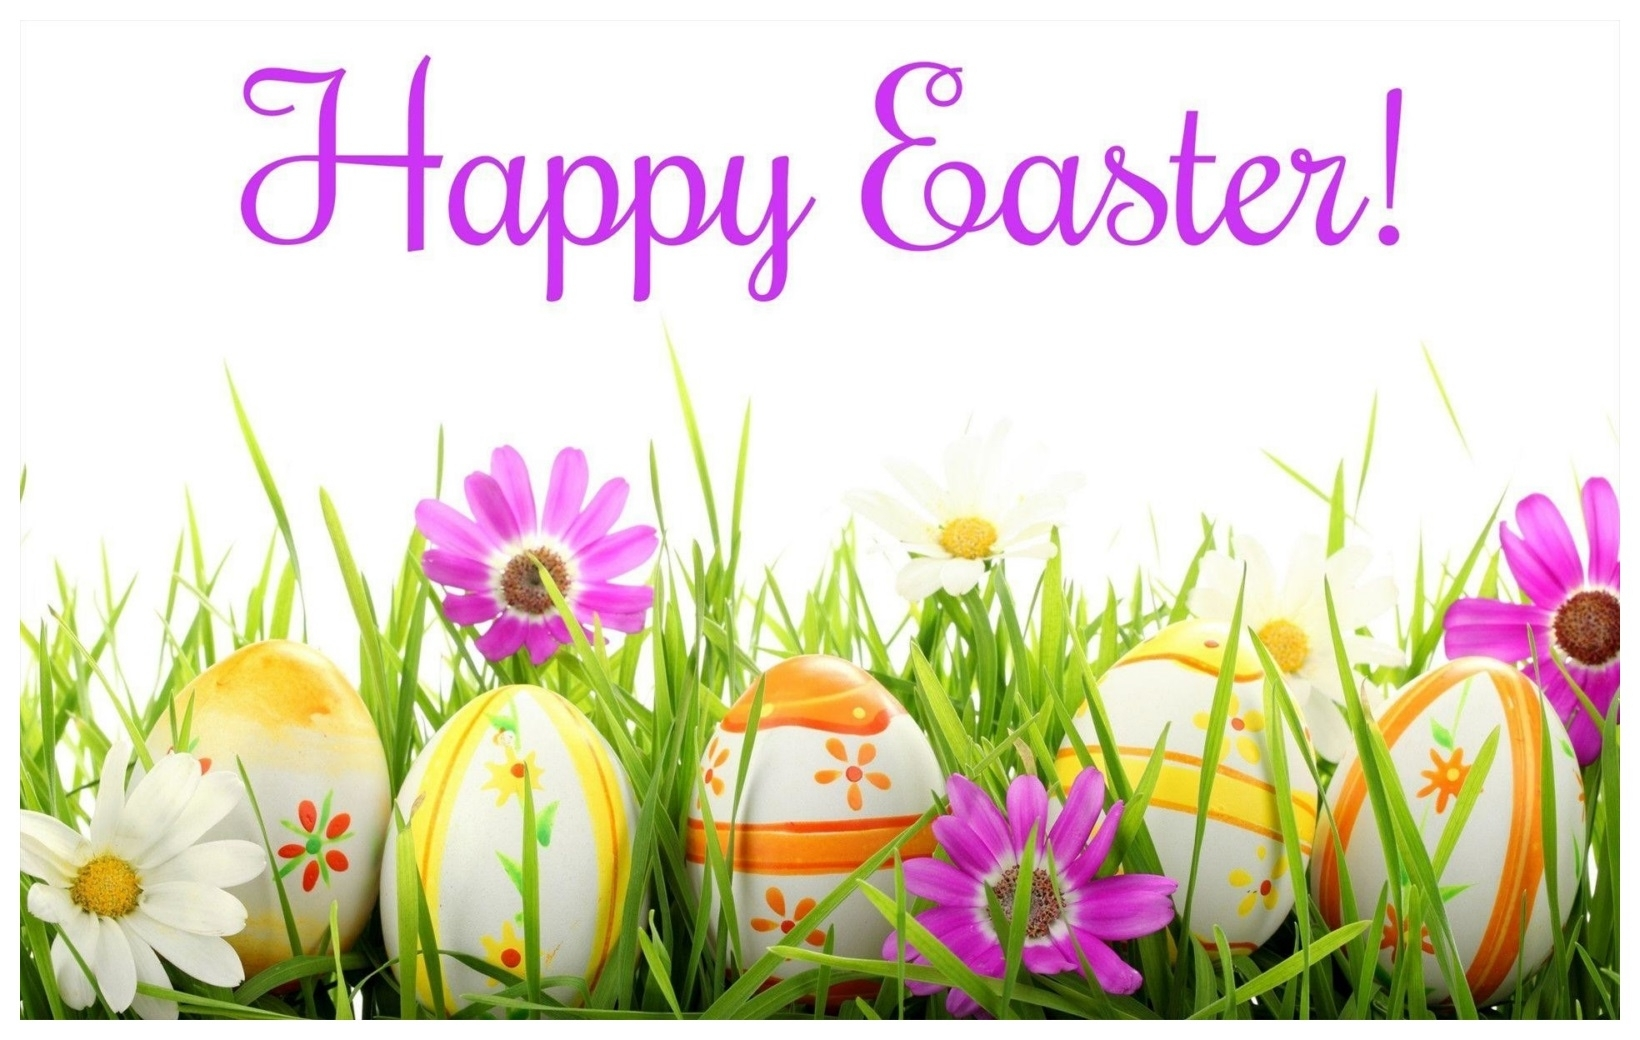 happy easter wallpaper pictures free download | 9 hd wallpapers